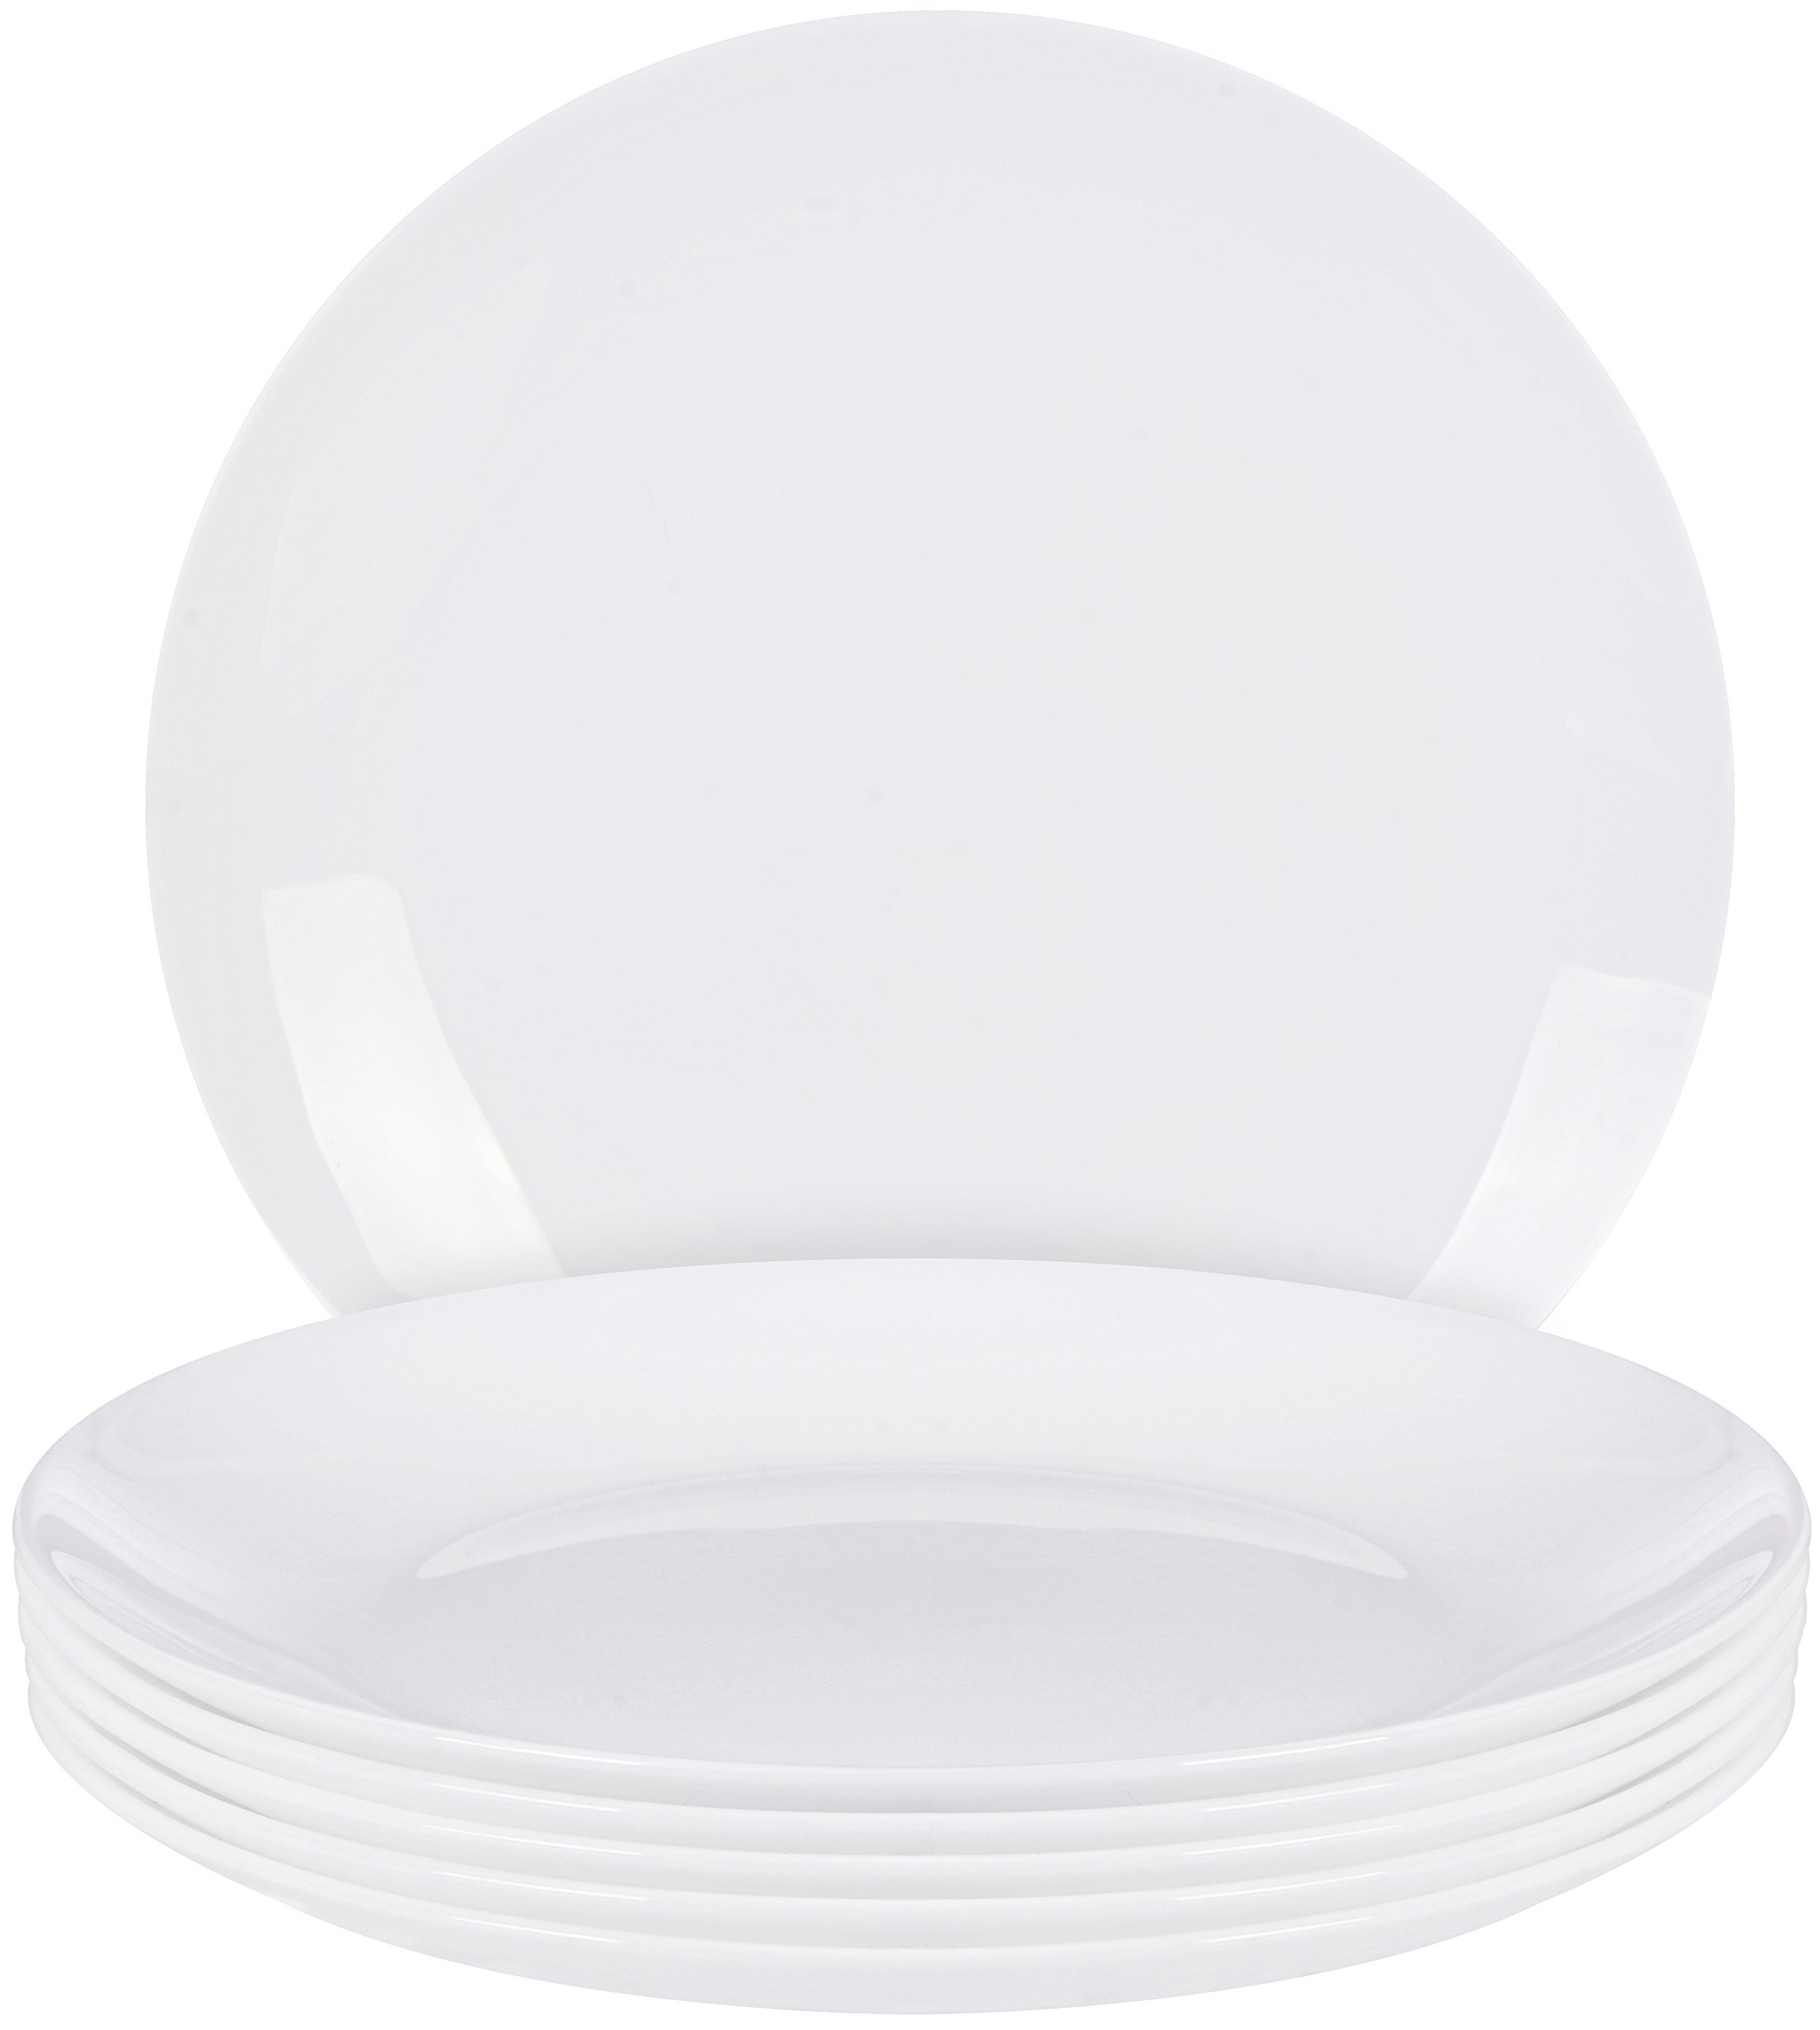 Utopia Kitchen 6 Pieces salad Plate Set - Dishwasher Safe Opal Glassware - Microwave/Oven Friendly